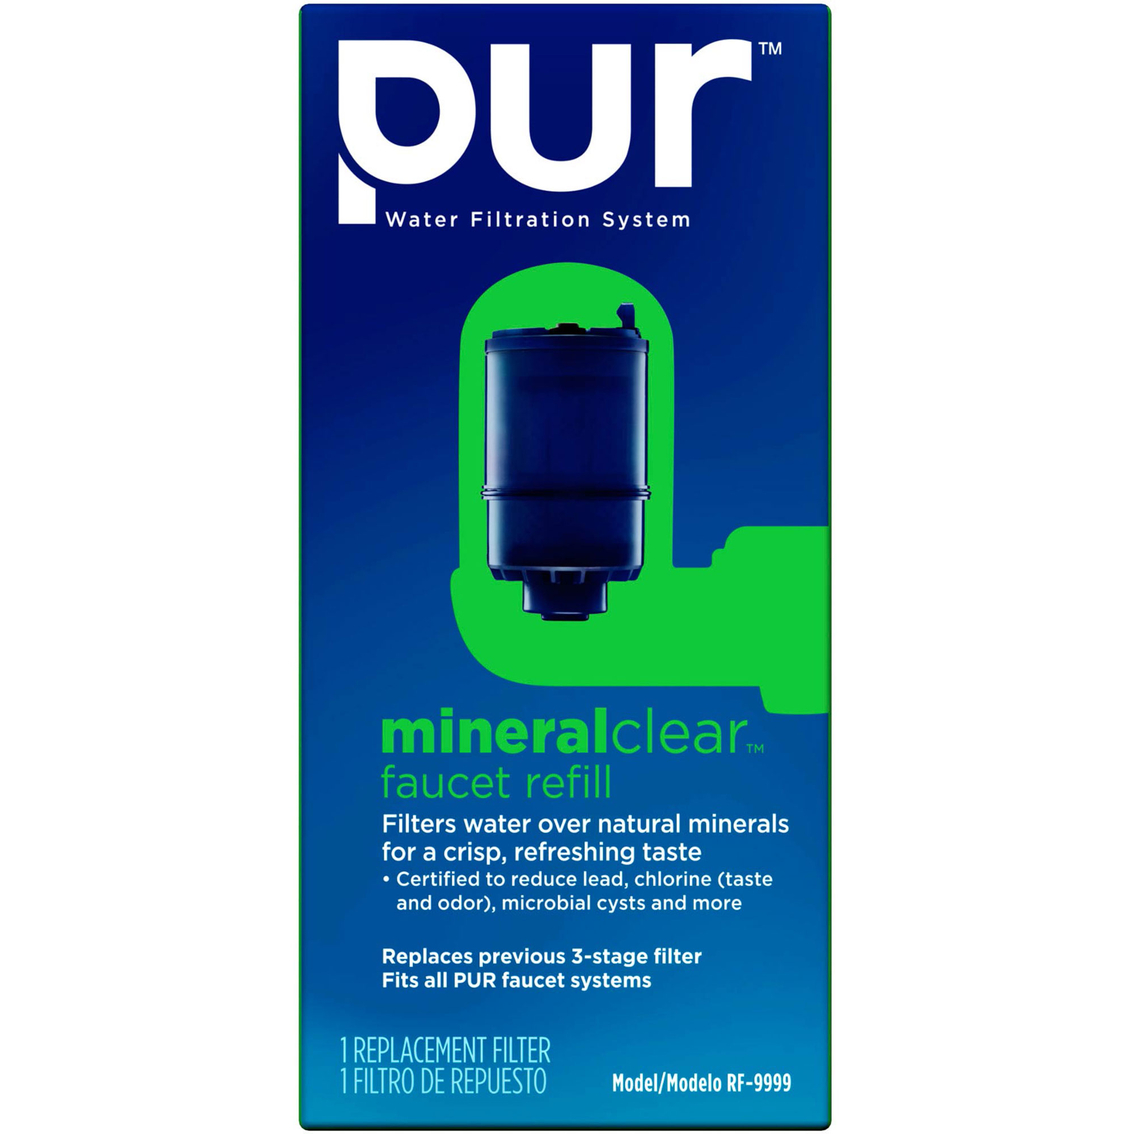 Pur Faucet Mount Water Filtration System Mineralclear Replacement ...